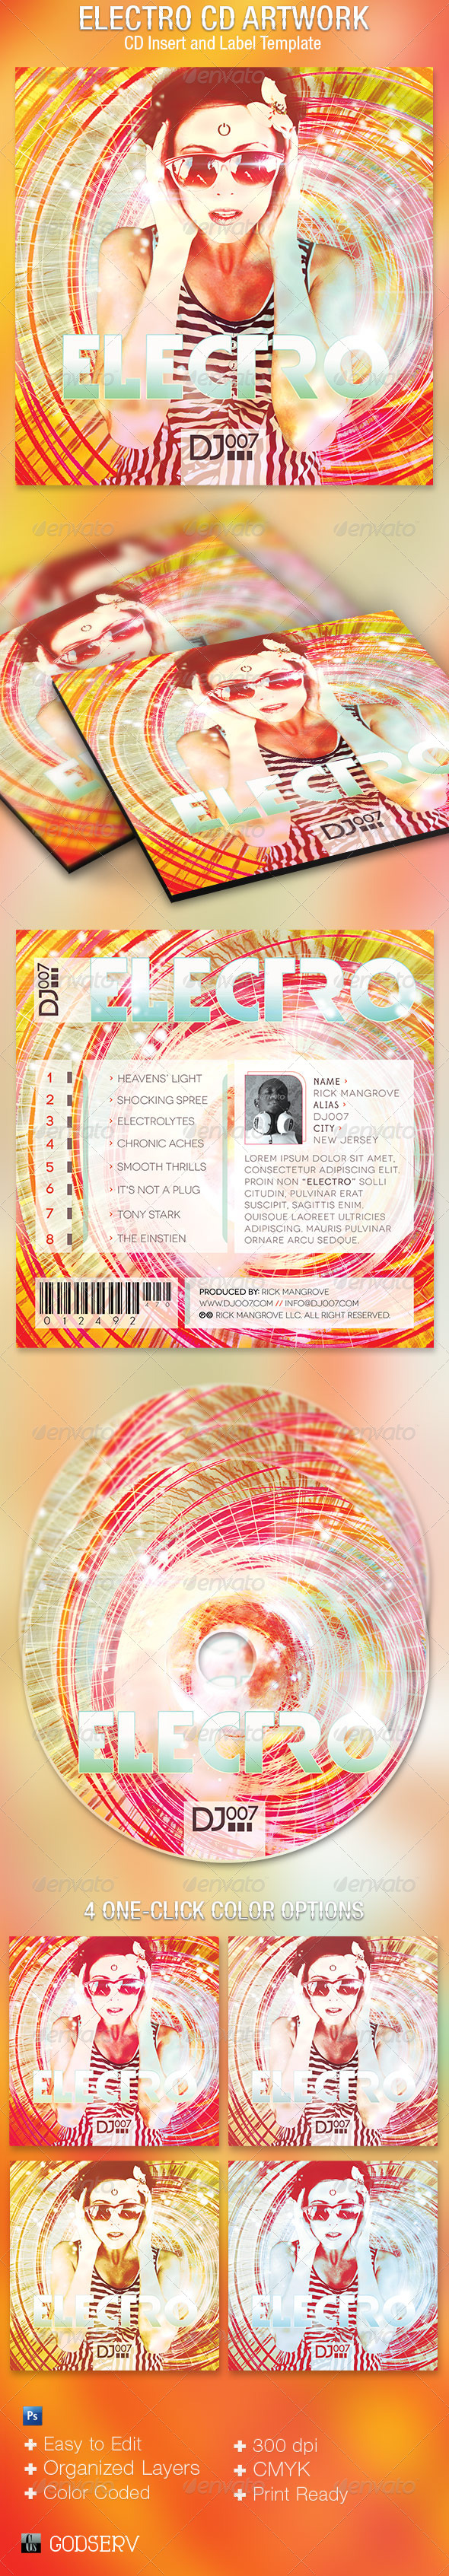 GraphicRiver Electro CD Artwork Template 5212323